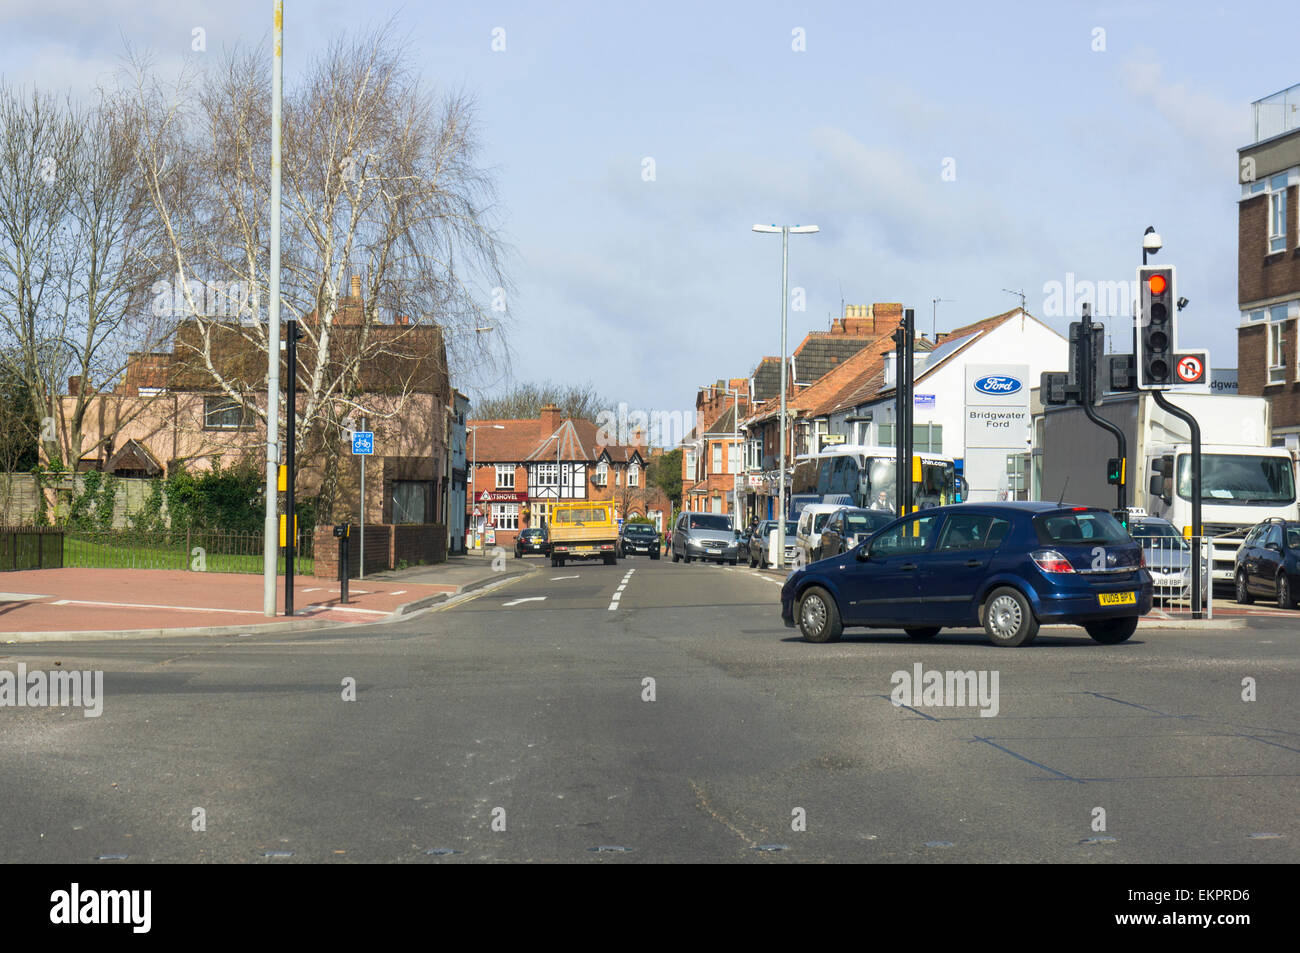 Crossroads road junction in a town centre, England, UK - Stock Image